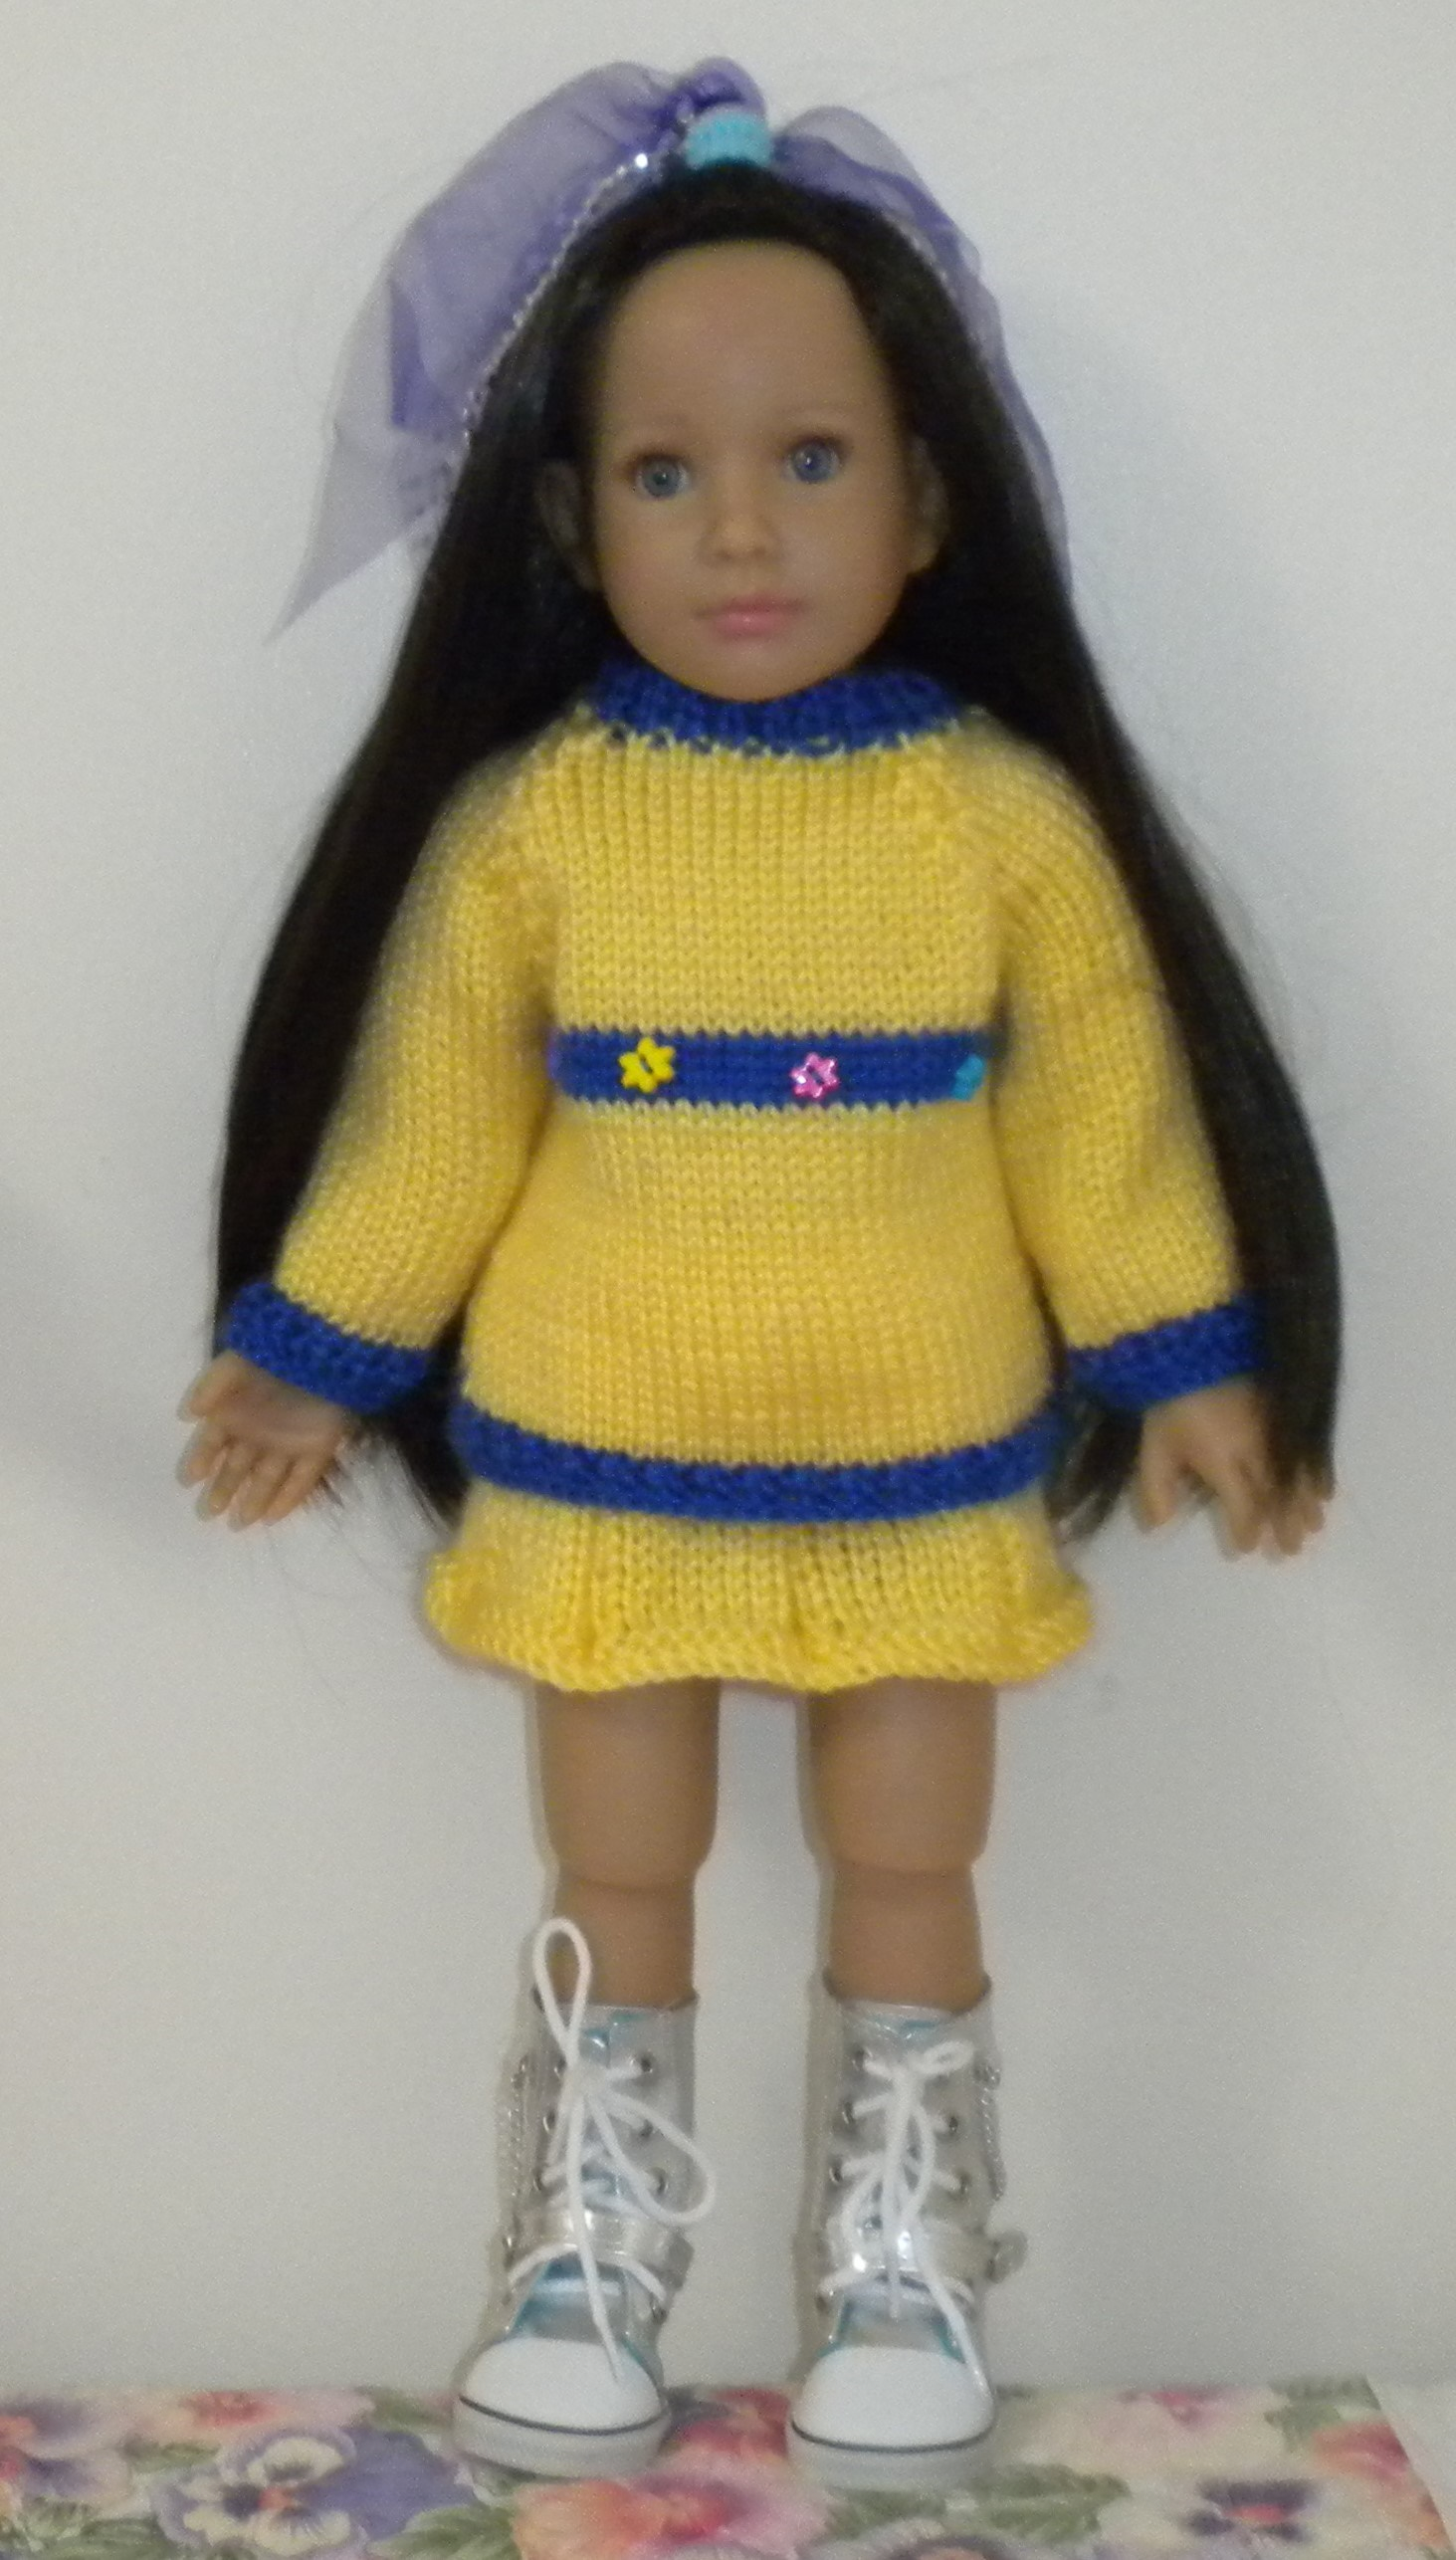 Free Knitting Patterns For Americangirl Dolls And Other 18 Inch Dolls Free Doll Clothes Patterns